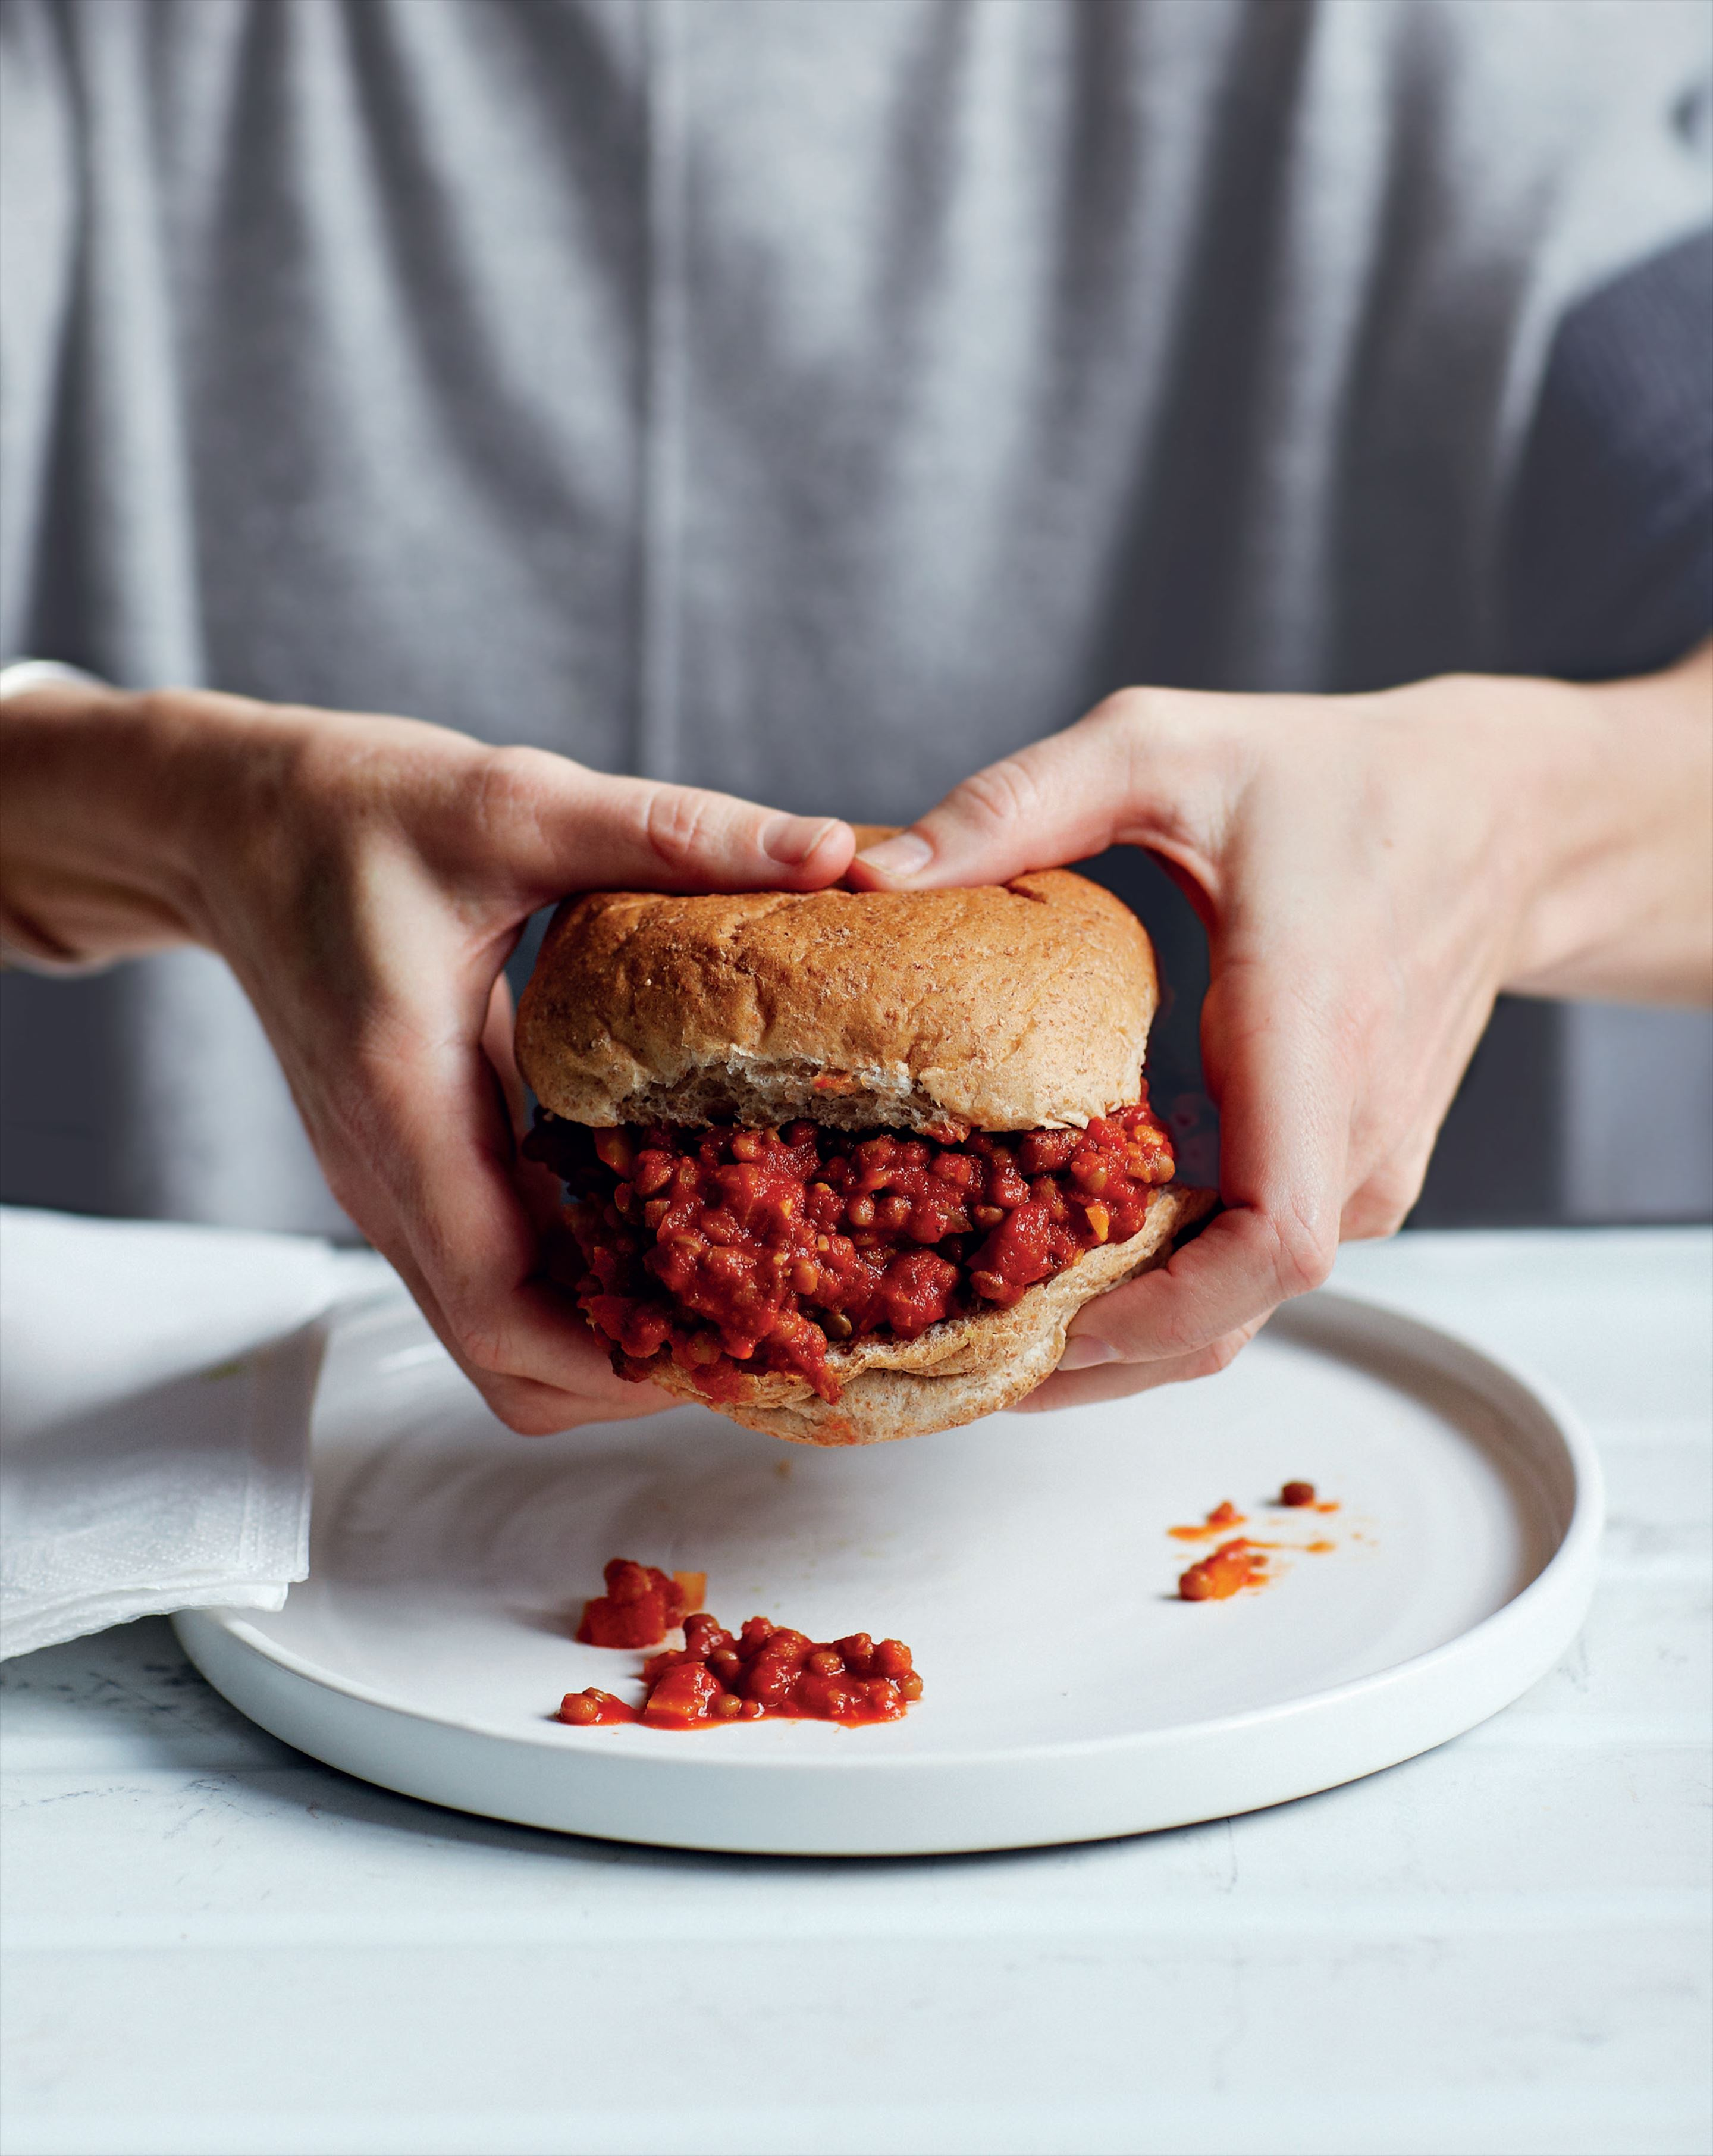 Julie's sloppy joes